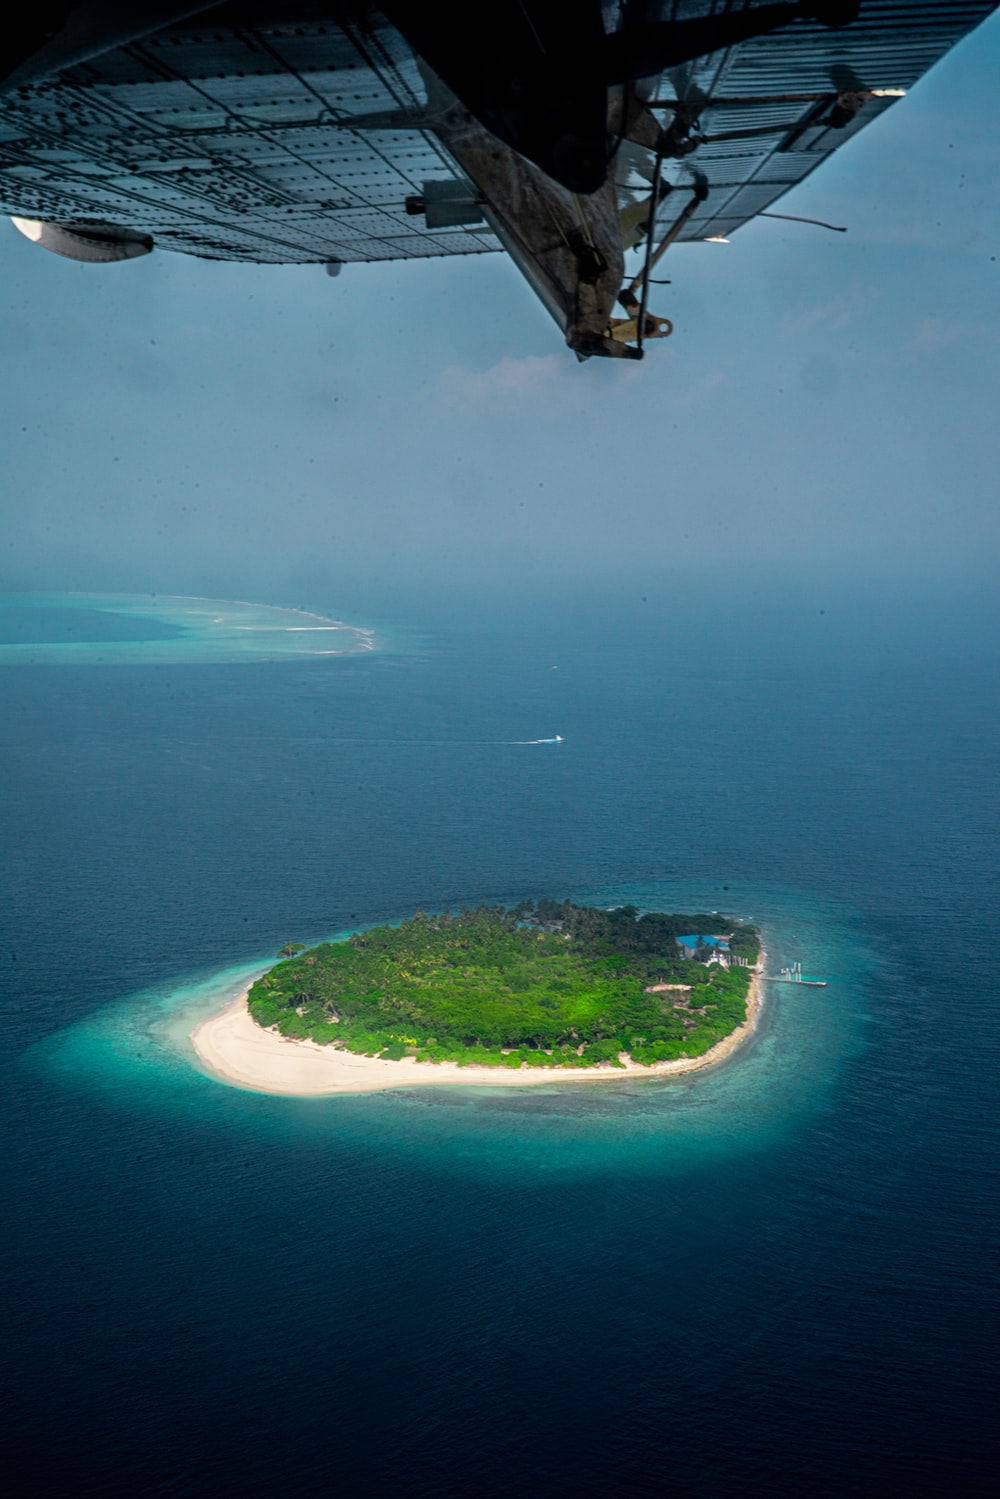 aerial view of green island during daytime